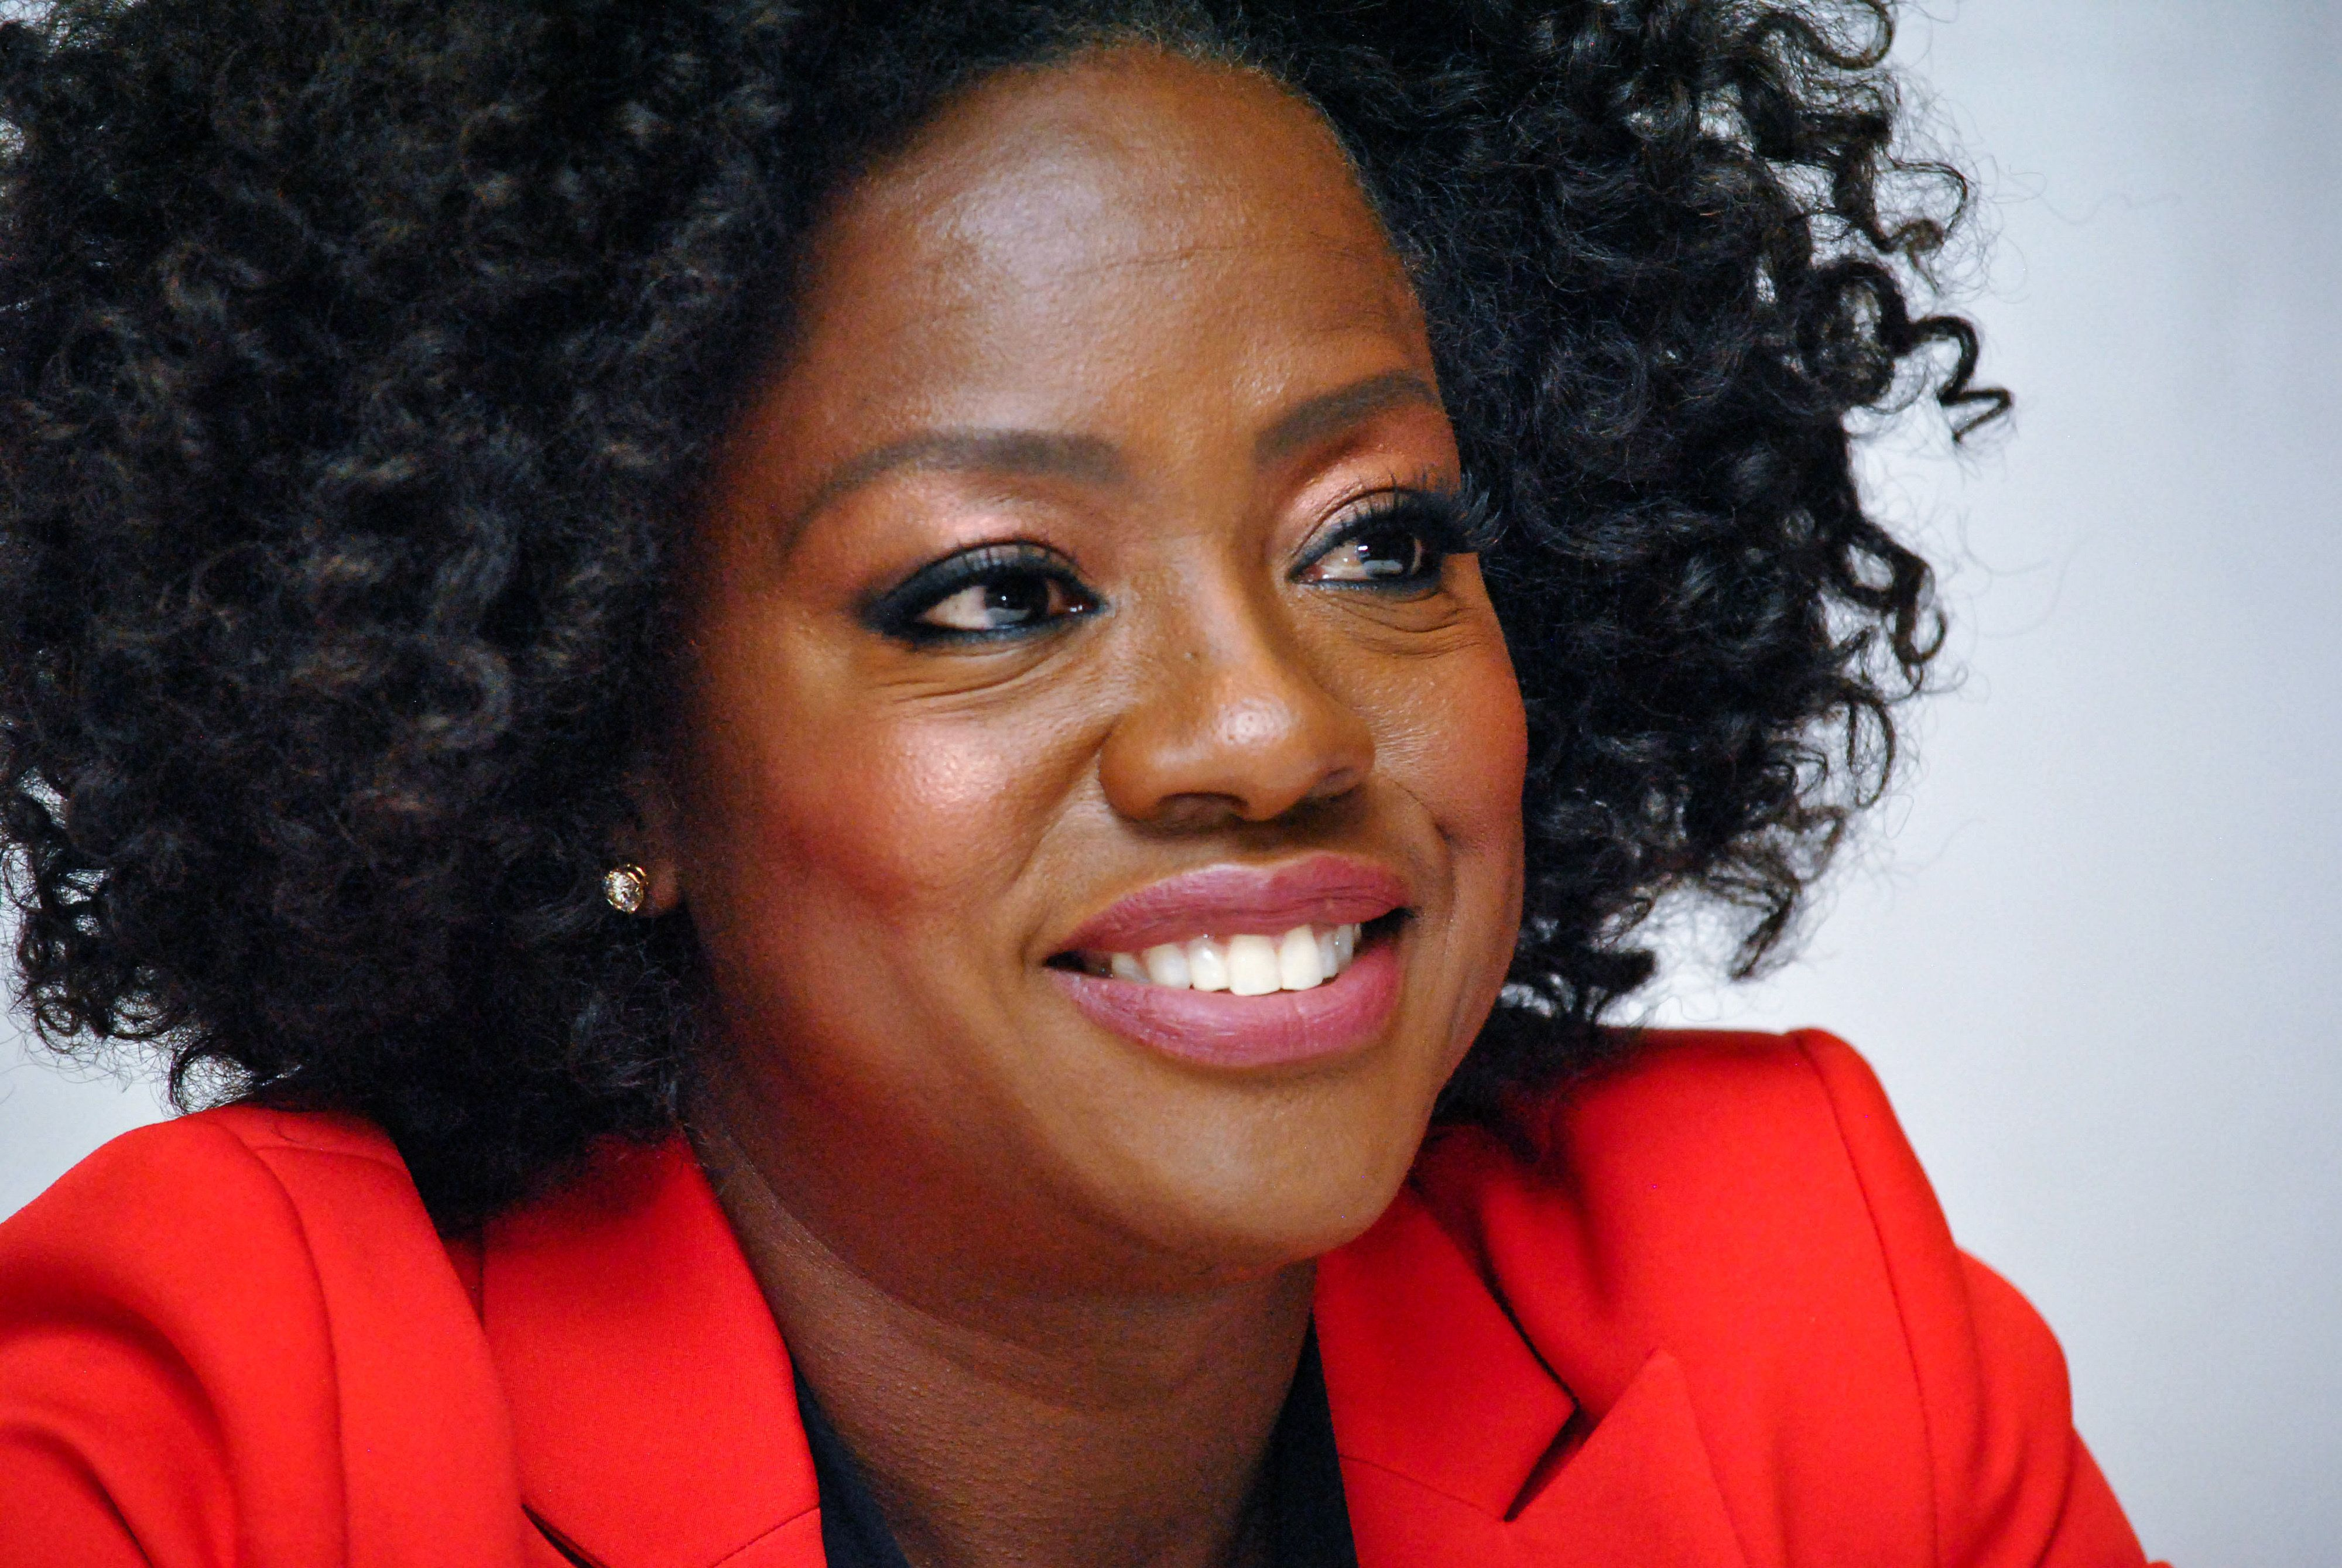 """Viola Davis at the Hollywood Foreign Press Association press conference for """"Widows"""" at the Fairmont Royal York Hotel in Toronto, Canada on September 8, 2018. (Photo by Yoram Kahana/Shooting Star/Sipa USA) *** NO TABLOID PUBLICATIONS IN THE USA ***"""